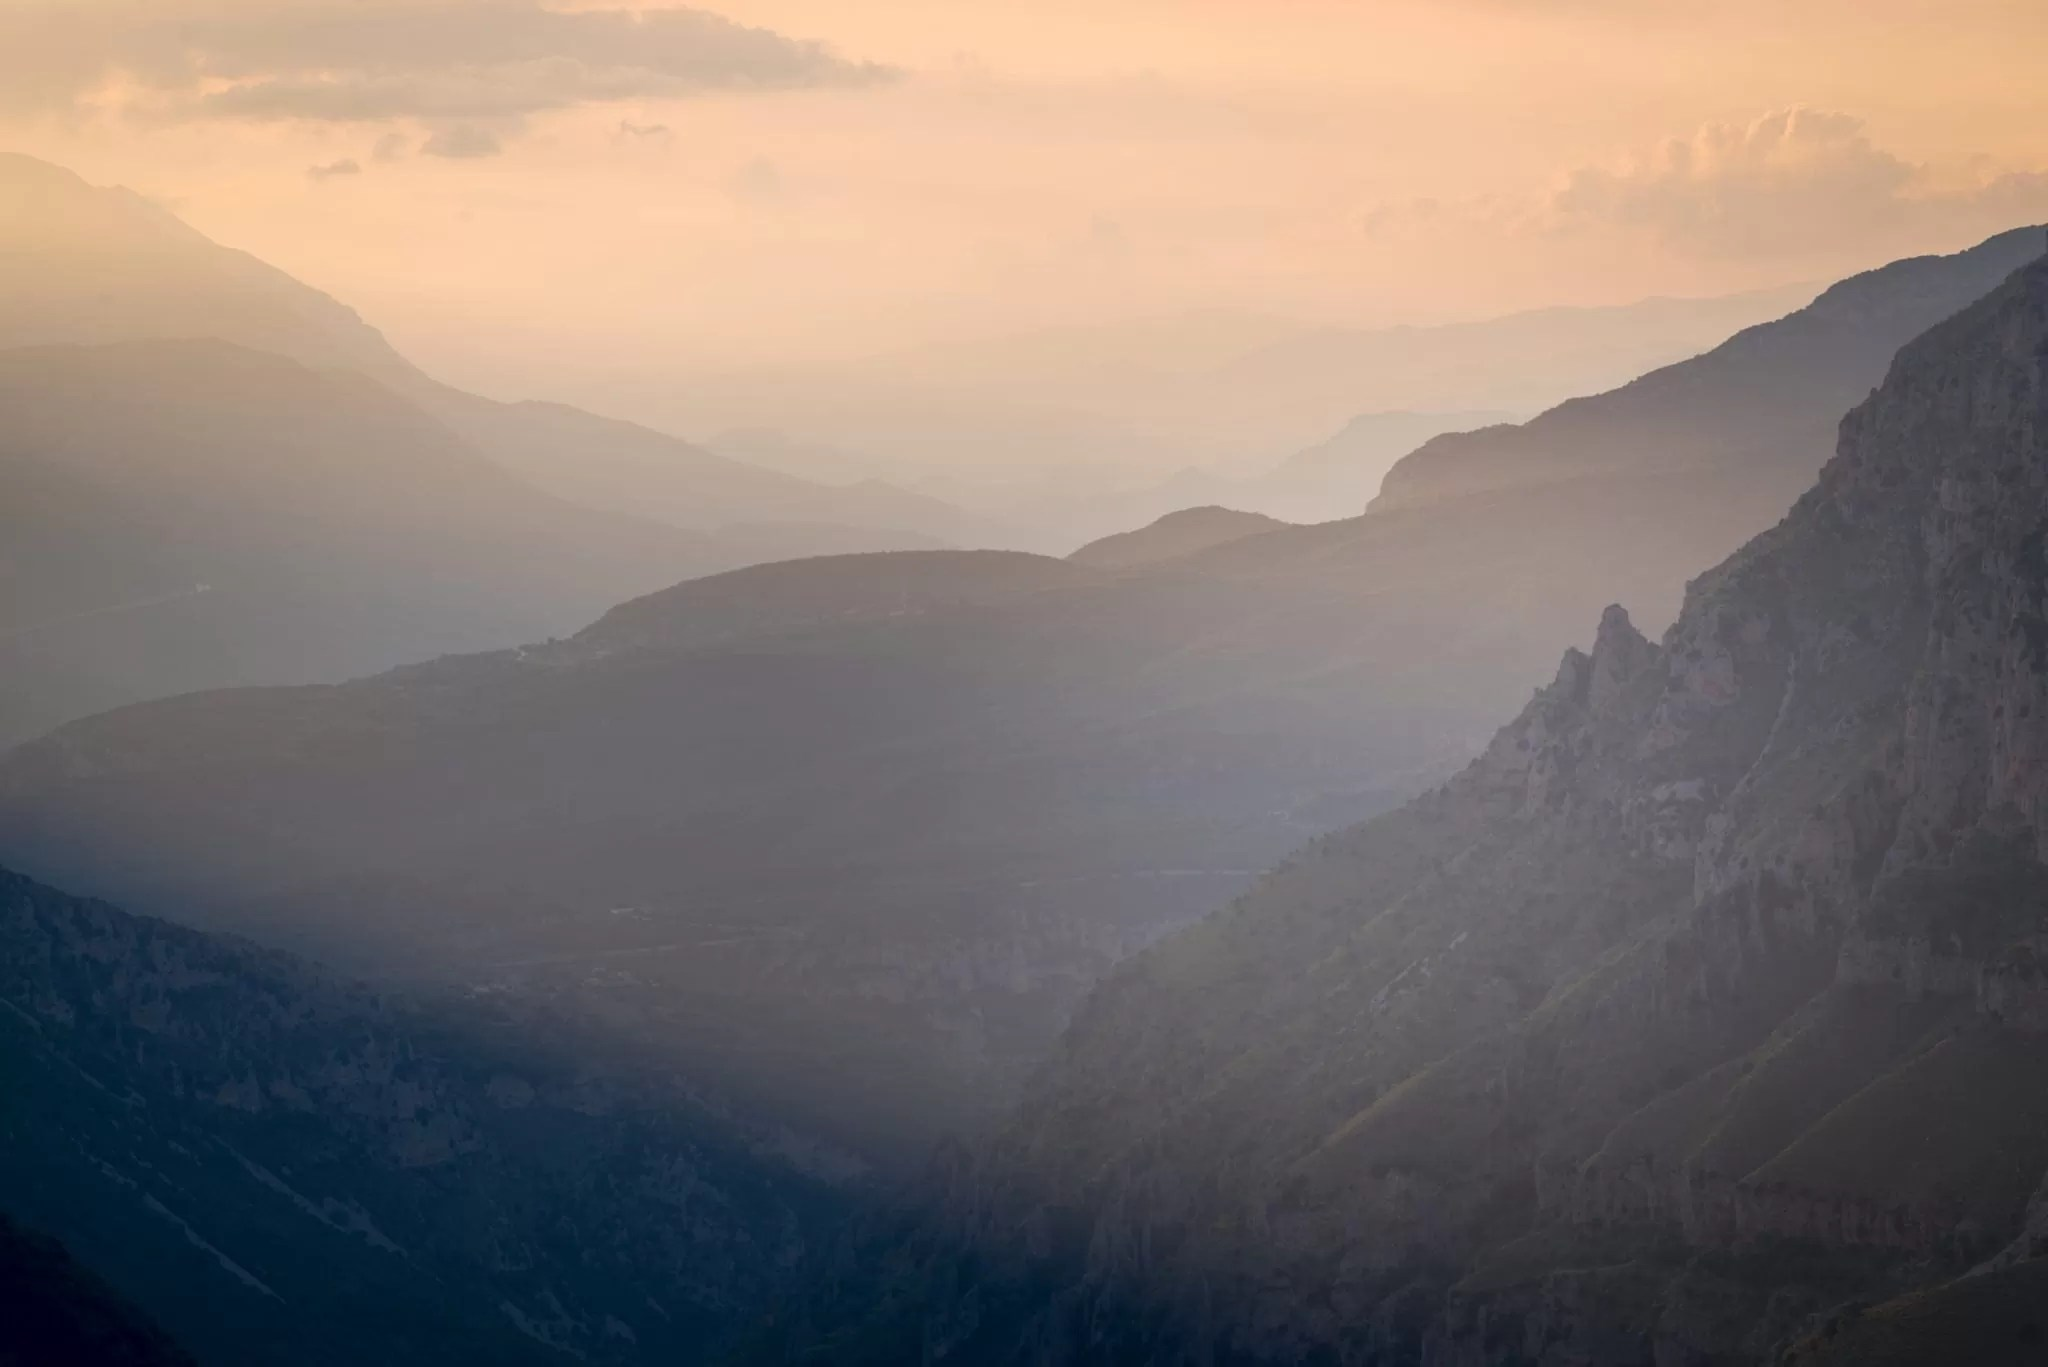 Vikos Gorge Mountains - Greece Zagoria Photography Workshop